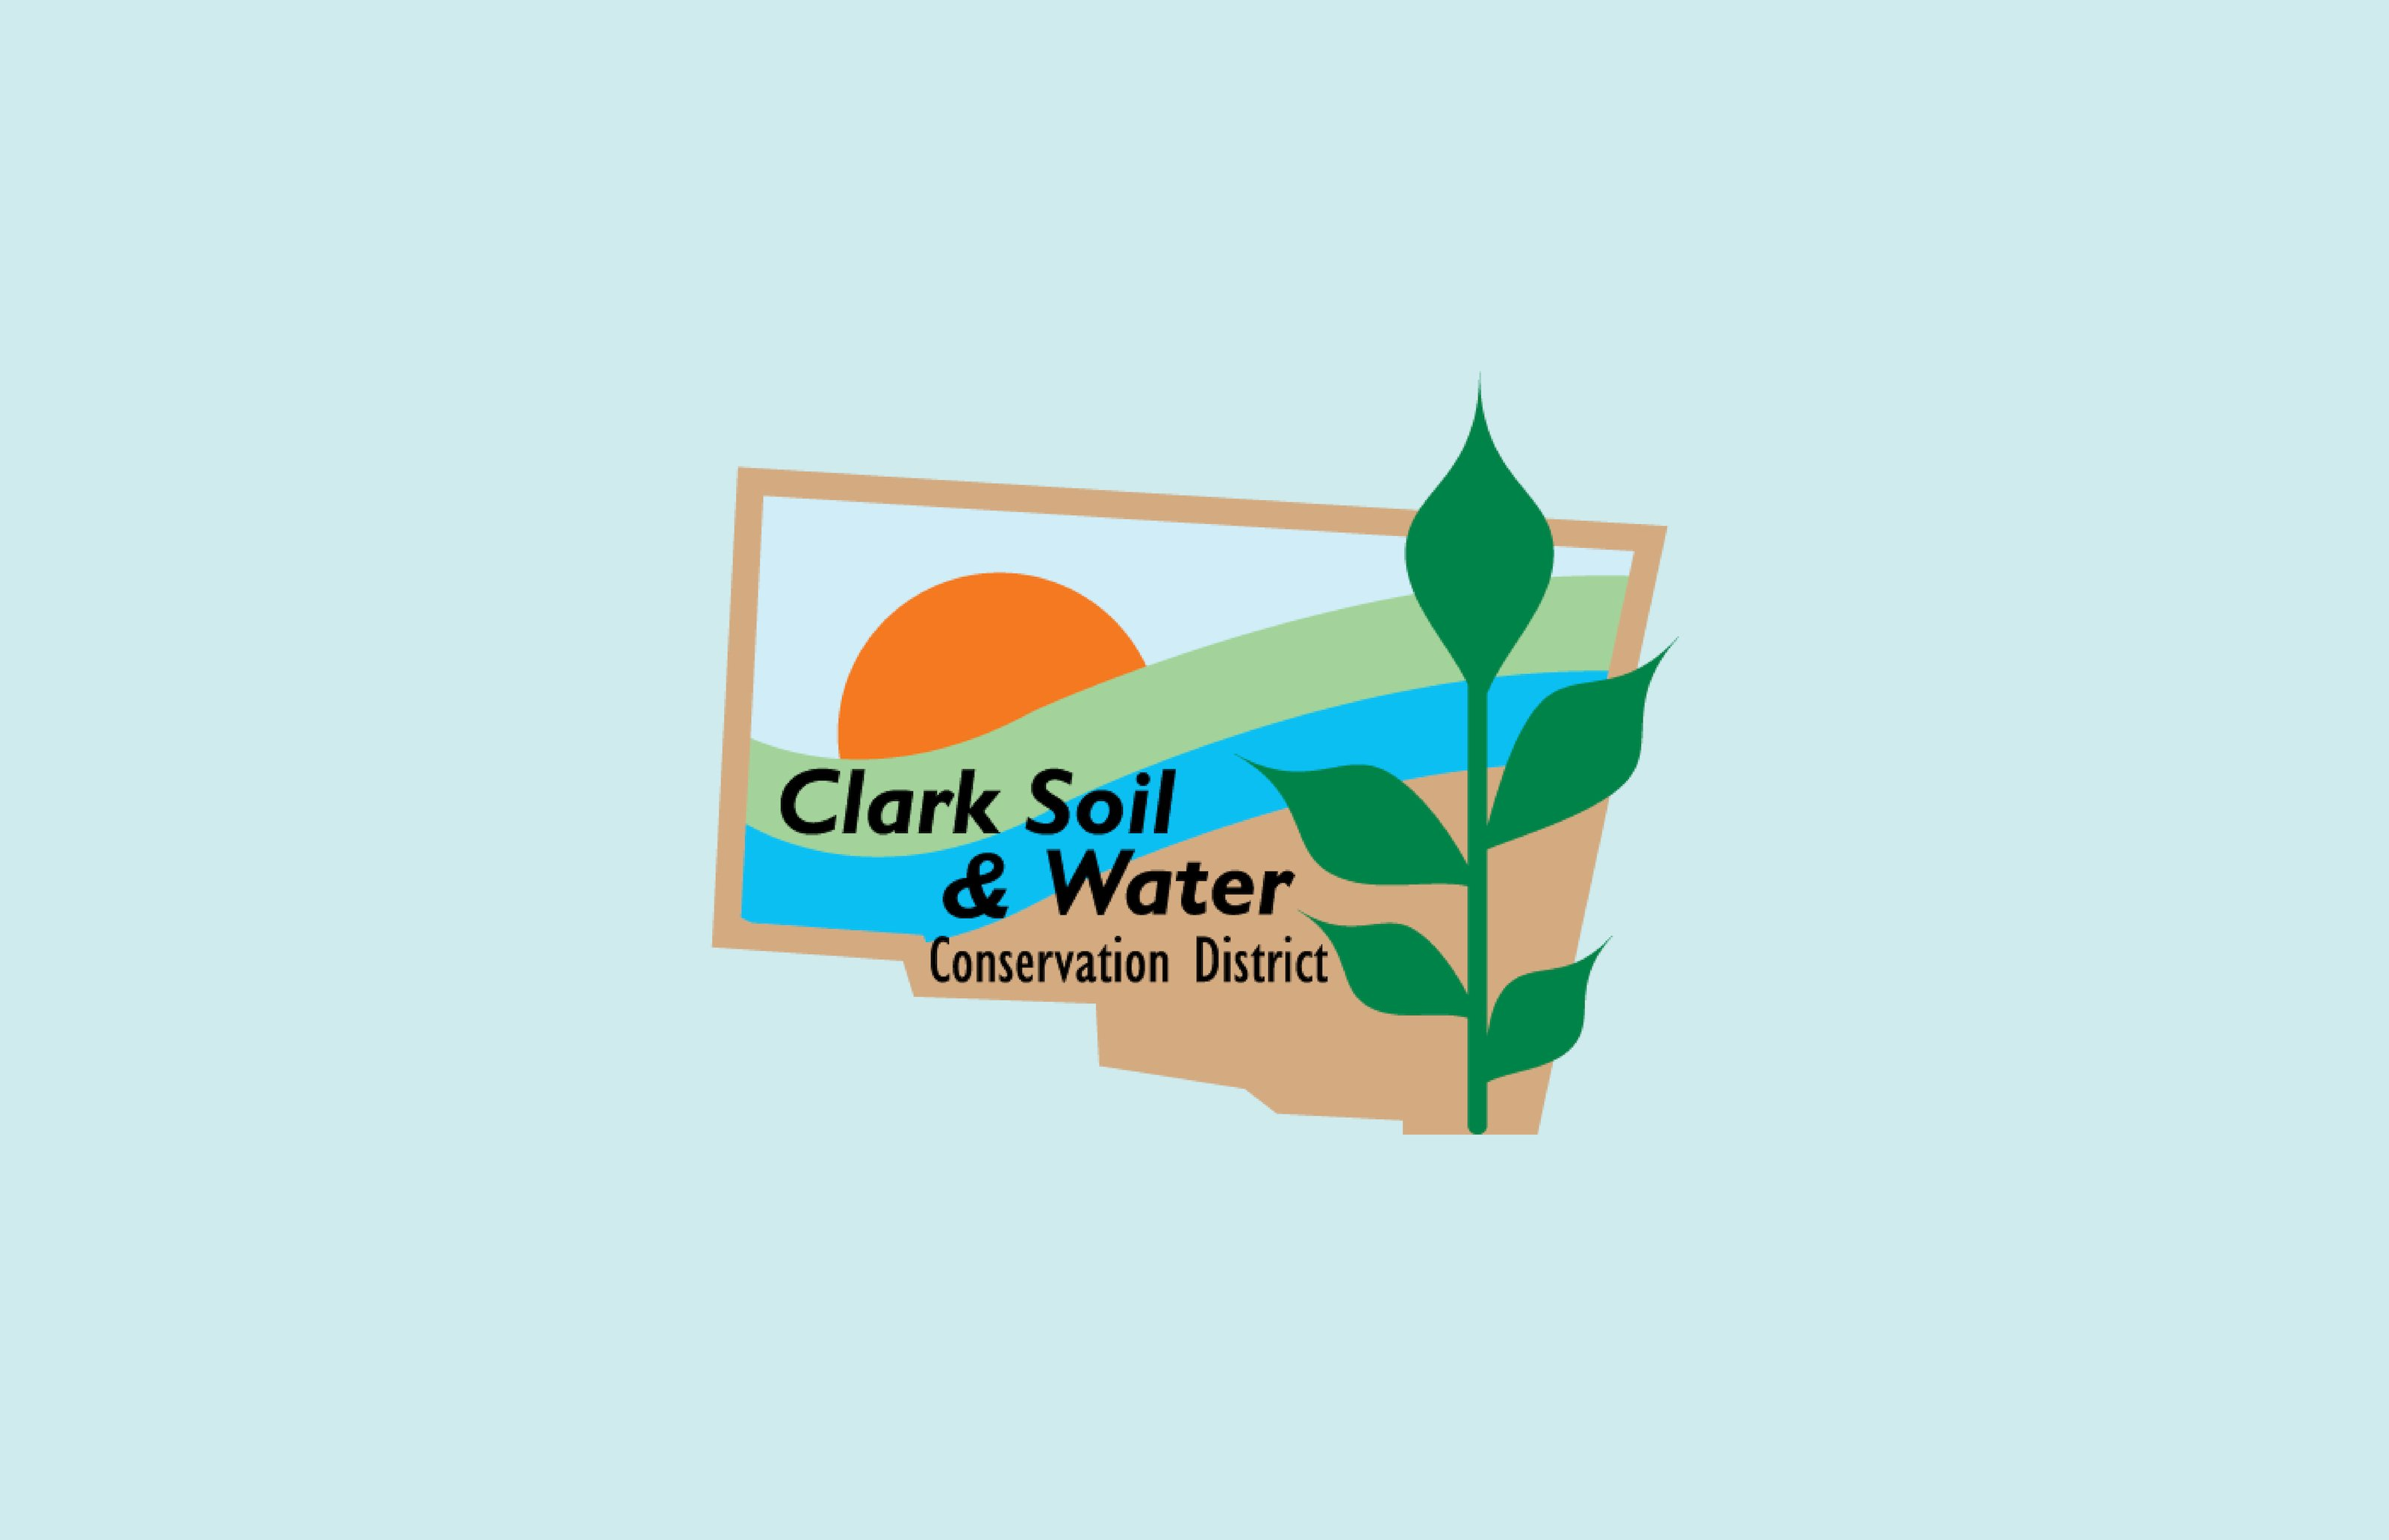 Clark Soil & Water Conservation District Logo Cover Image